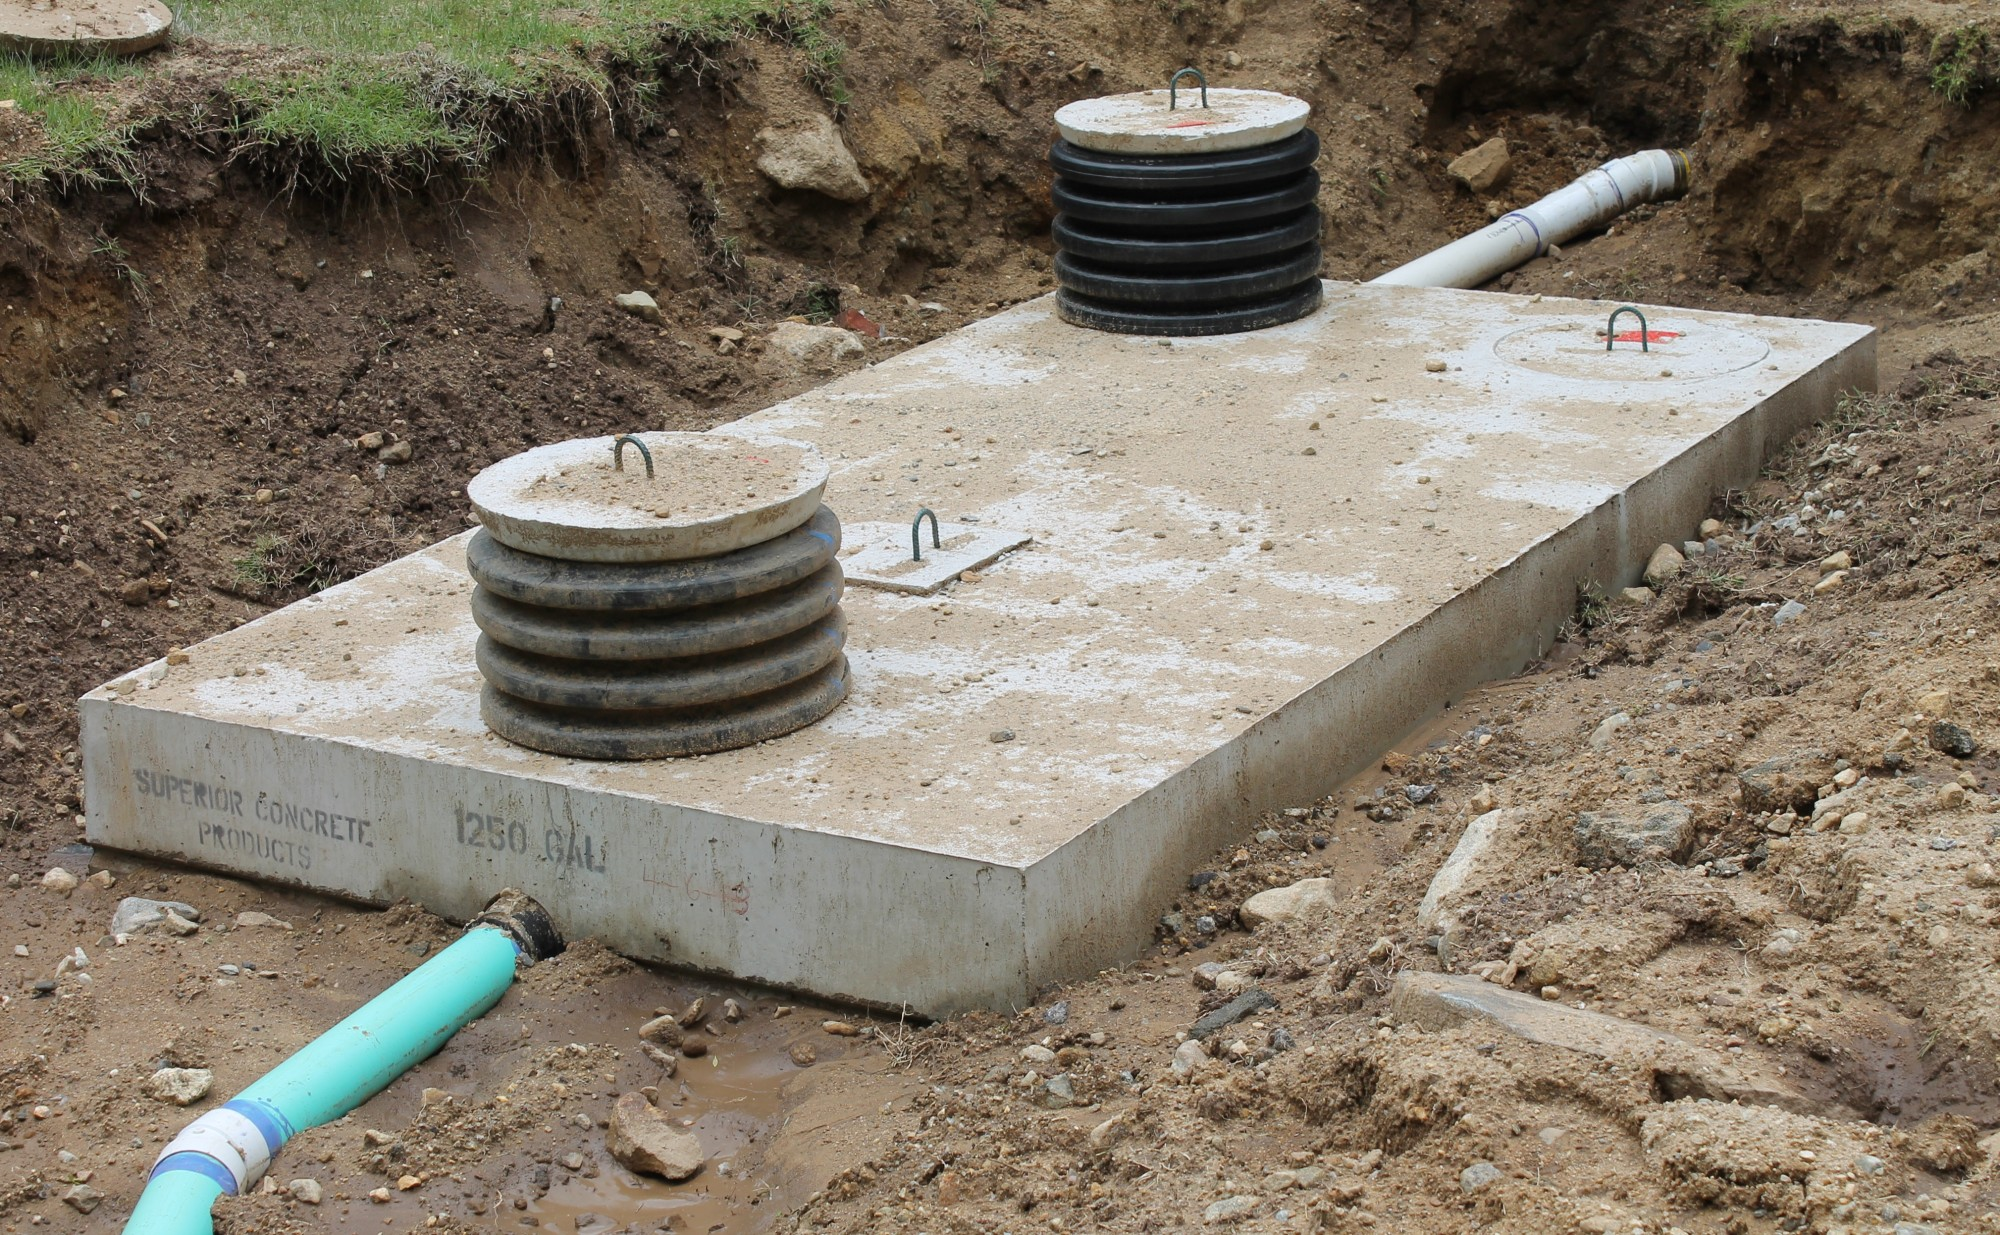 Chris campbell plumbing in claremore ok 74017 for Septic tank plumbing problems